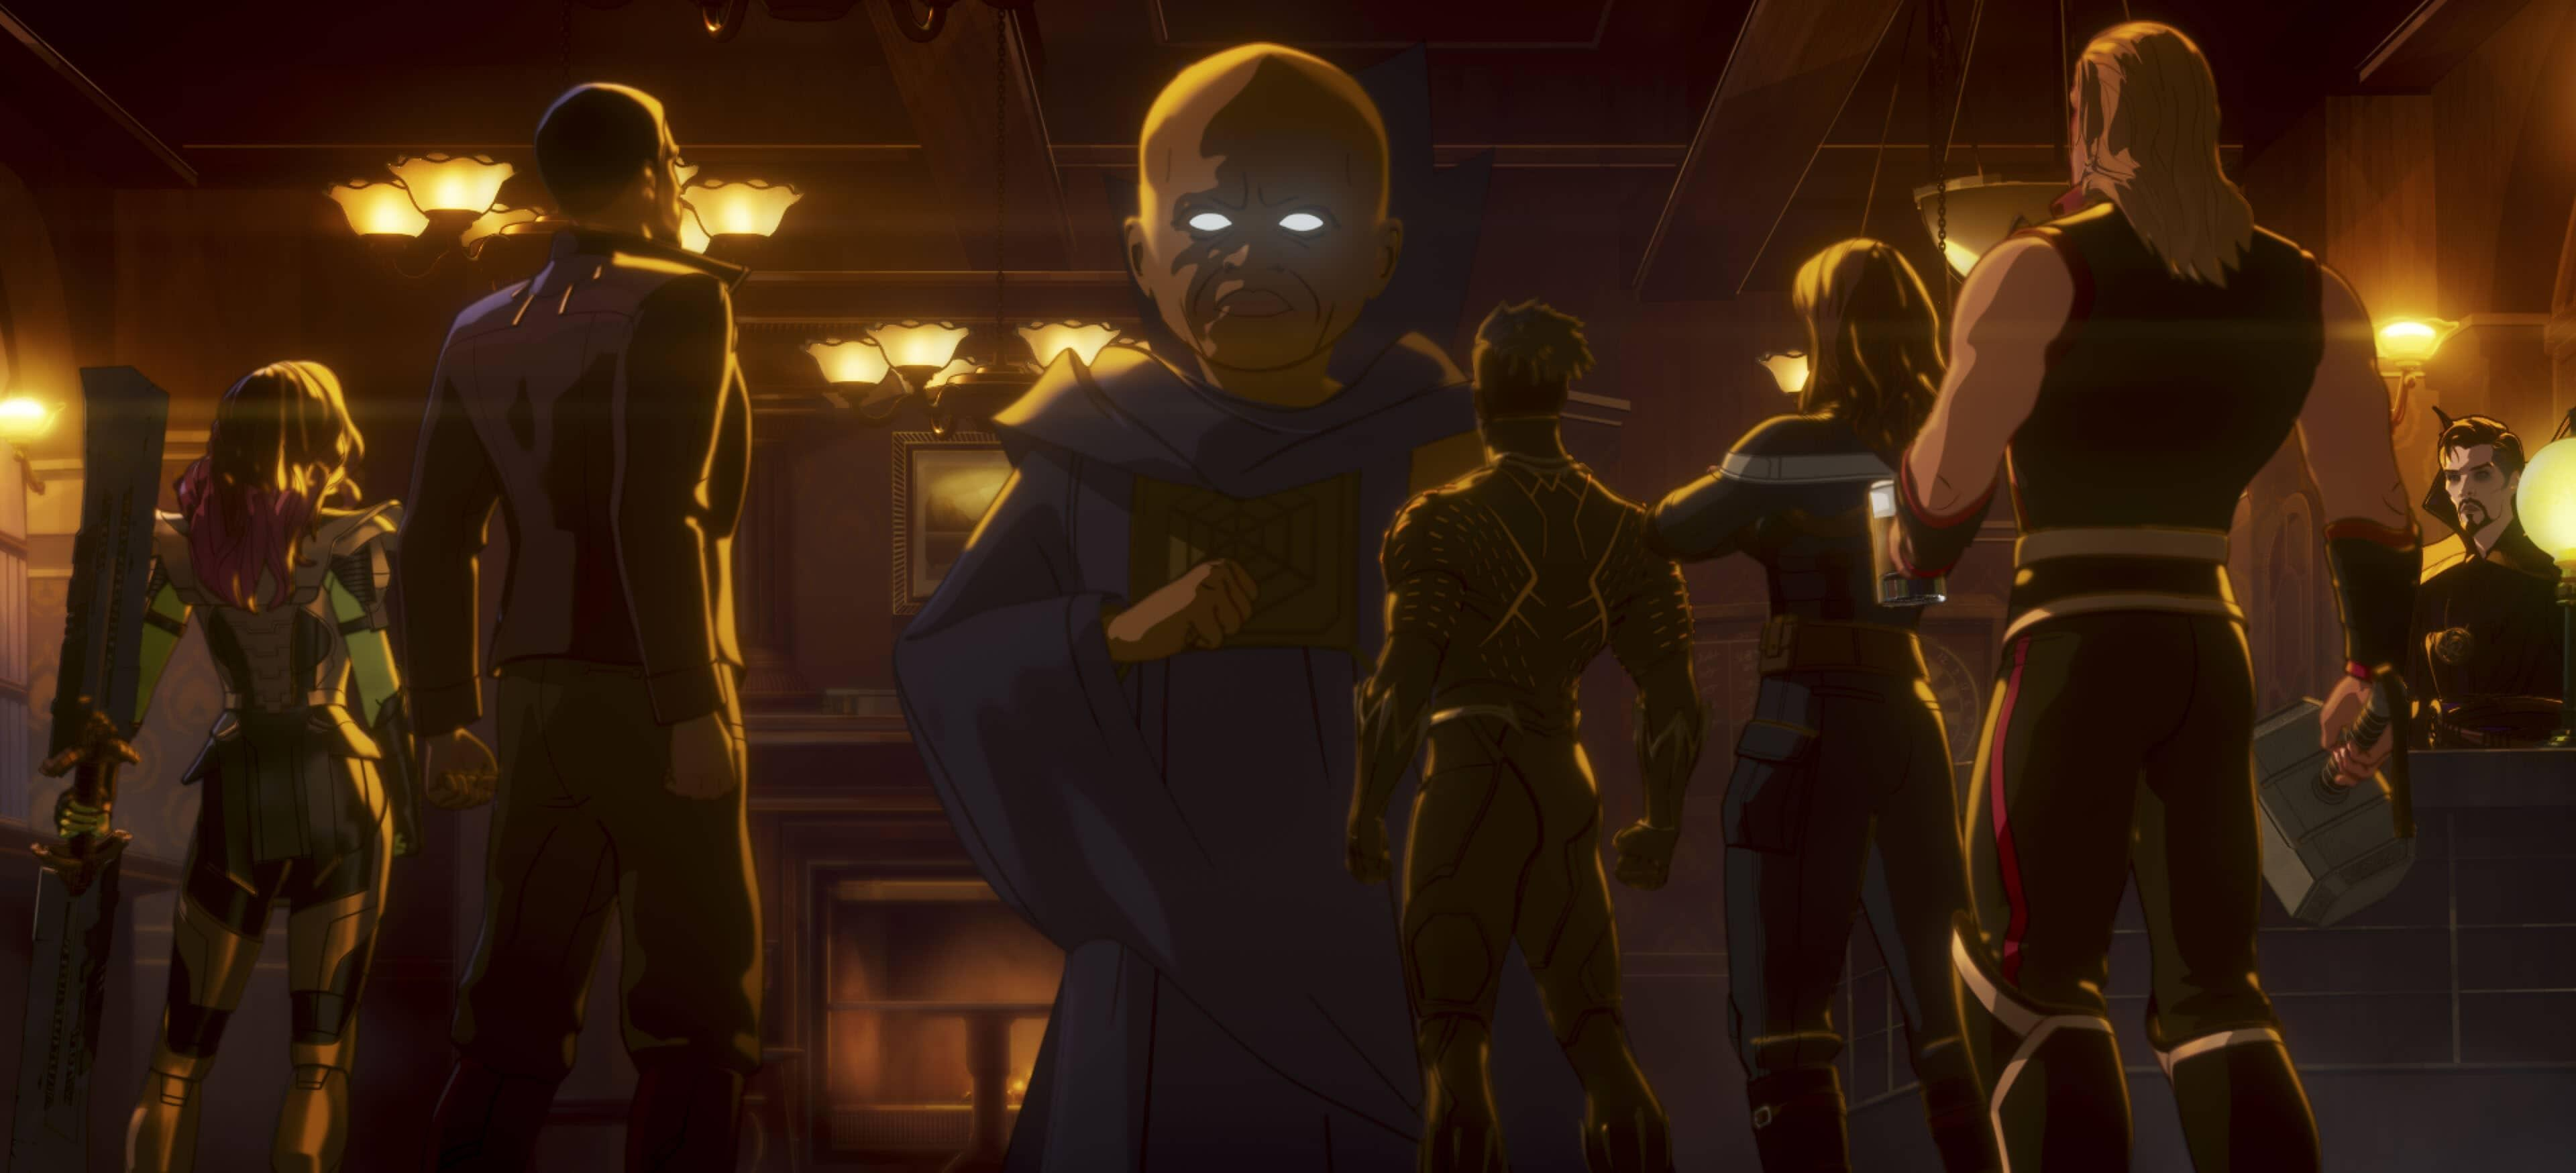 A still from Marvel's What If...? of the Watcher looking over his new team in a bar